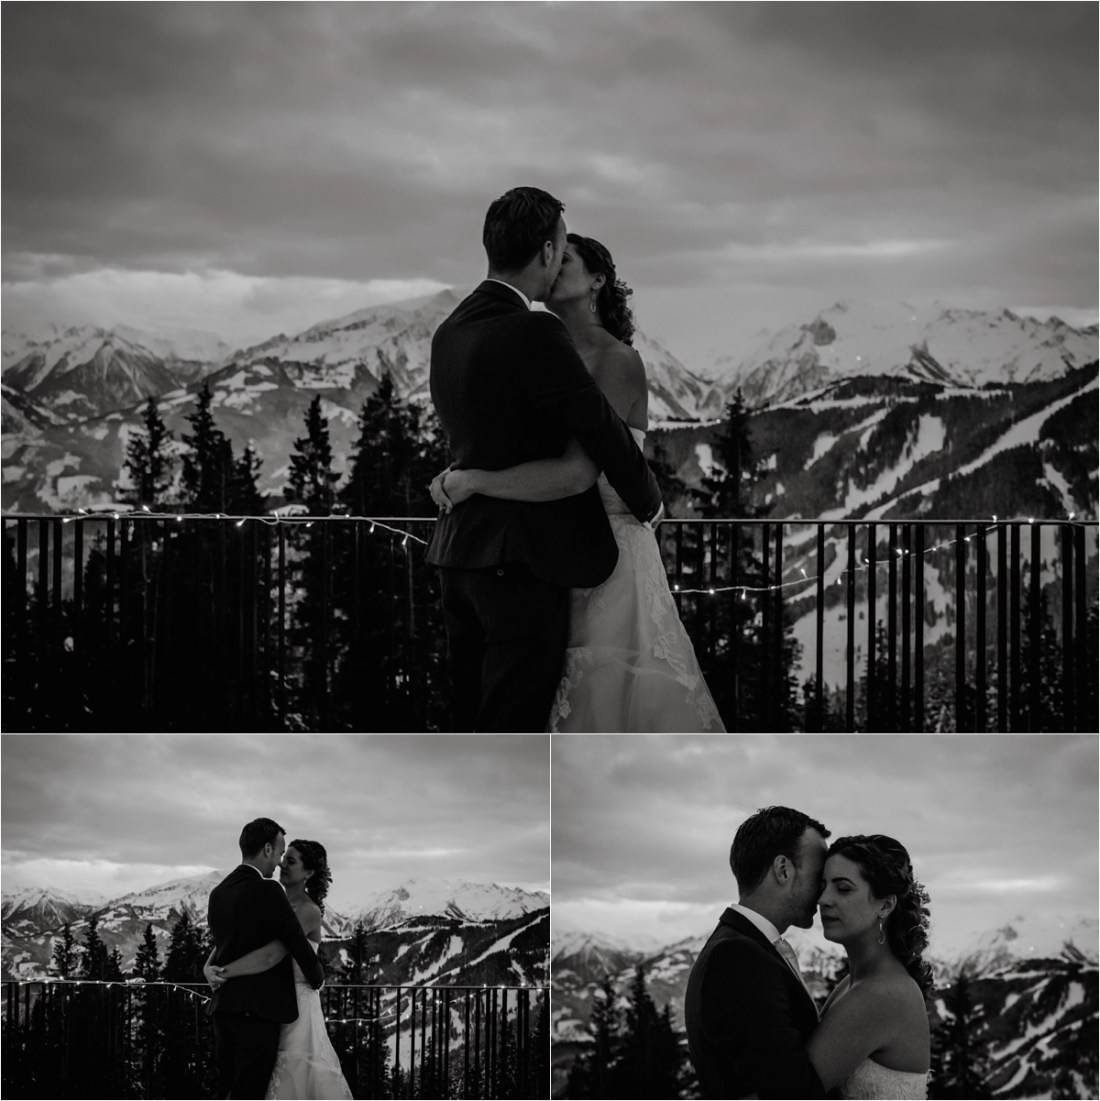 Bride & groom pictures after dark at the Schmiedhof Alm in Austria by Wild Connections Photography